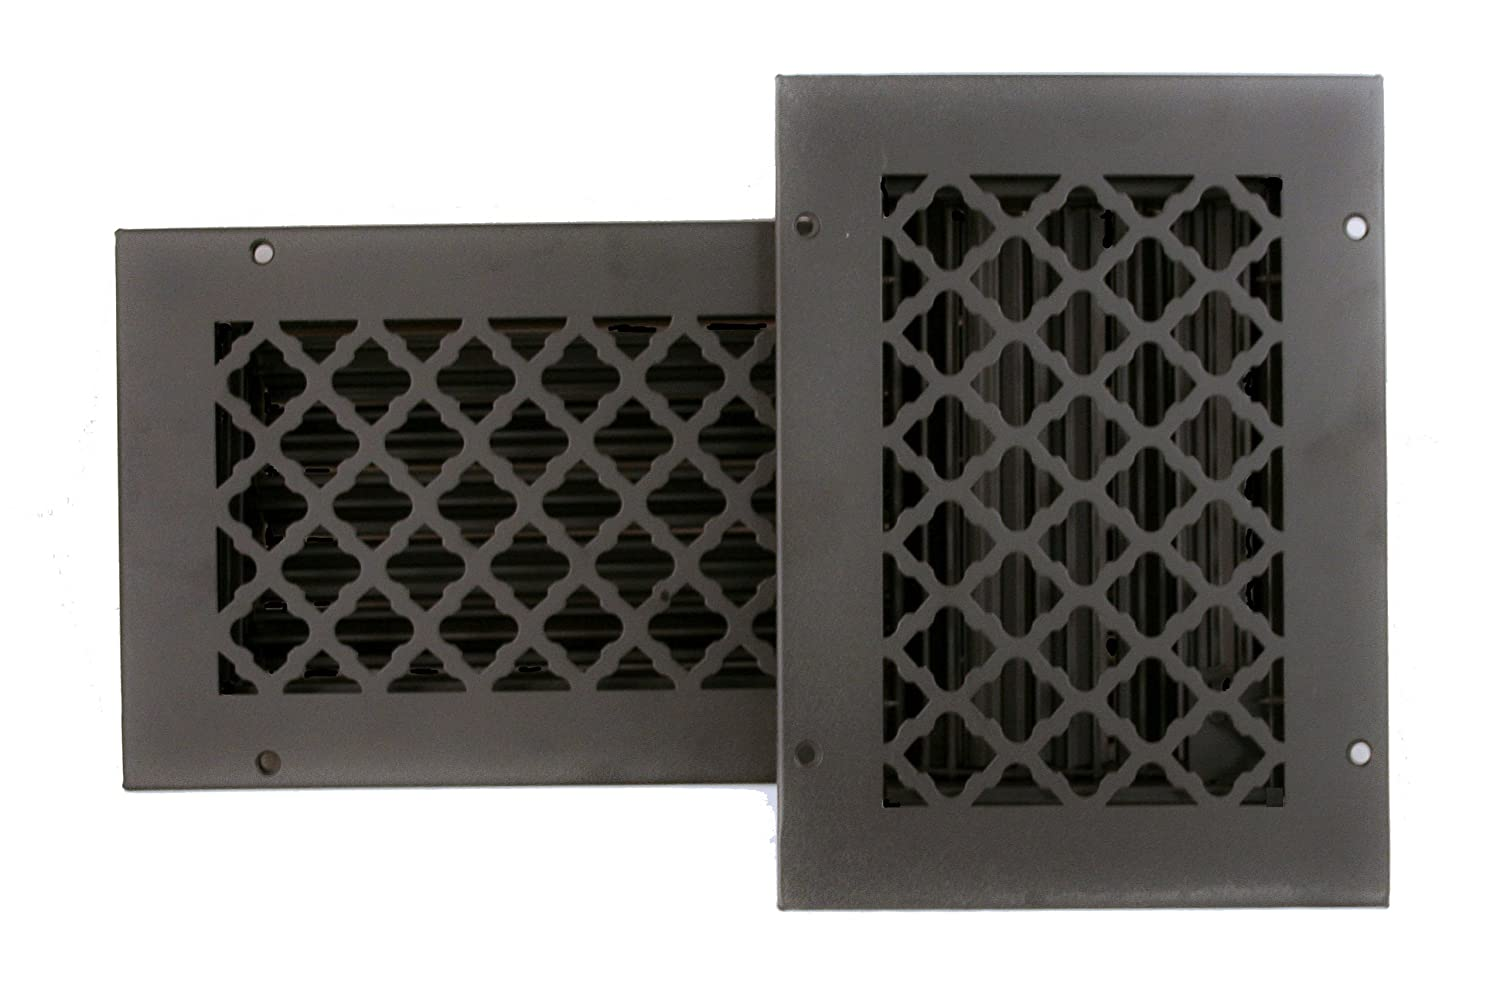 #32302C Compare Price 6 X 30 OIL RUBBED BRONZE SCROLL DESIGN VENT  Recommended 6447 Sidewall Register Covers pics with 1500x1000 px on helpvideos.info - Air Conditioners, Air Coolers and more